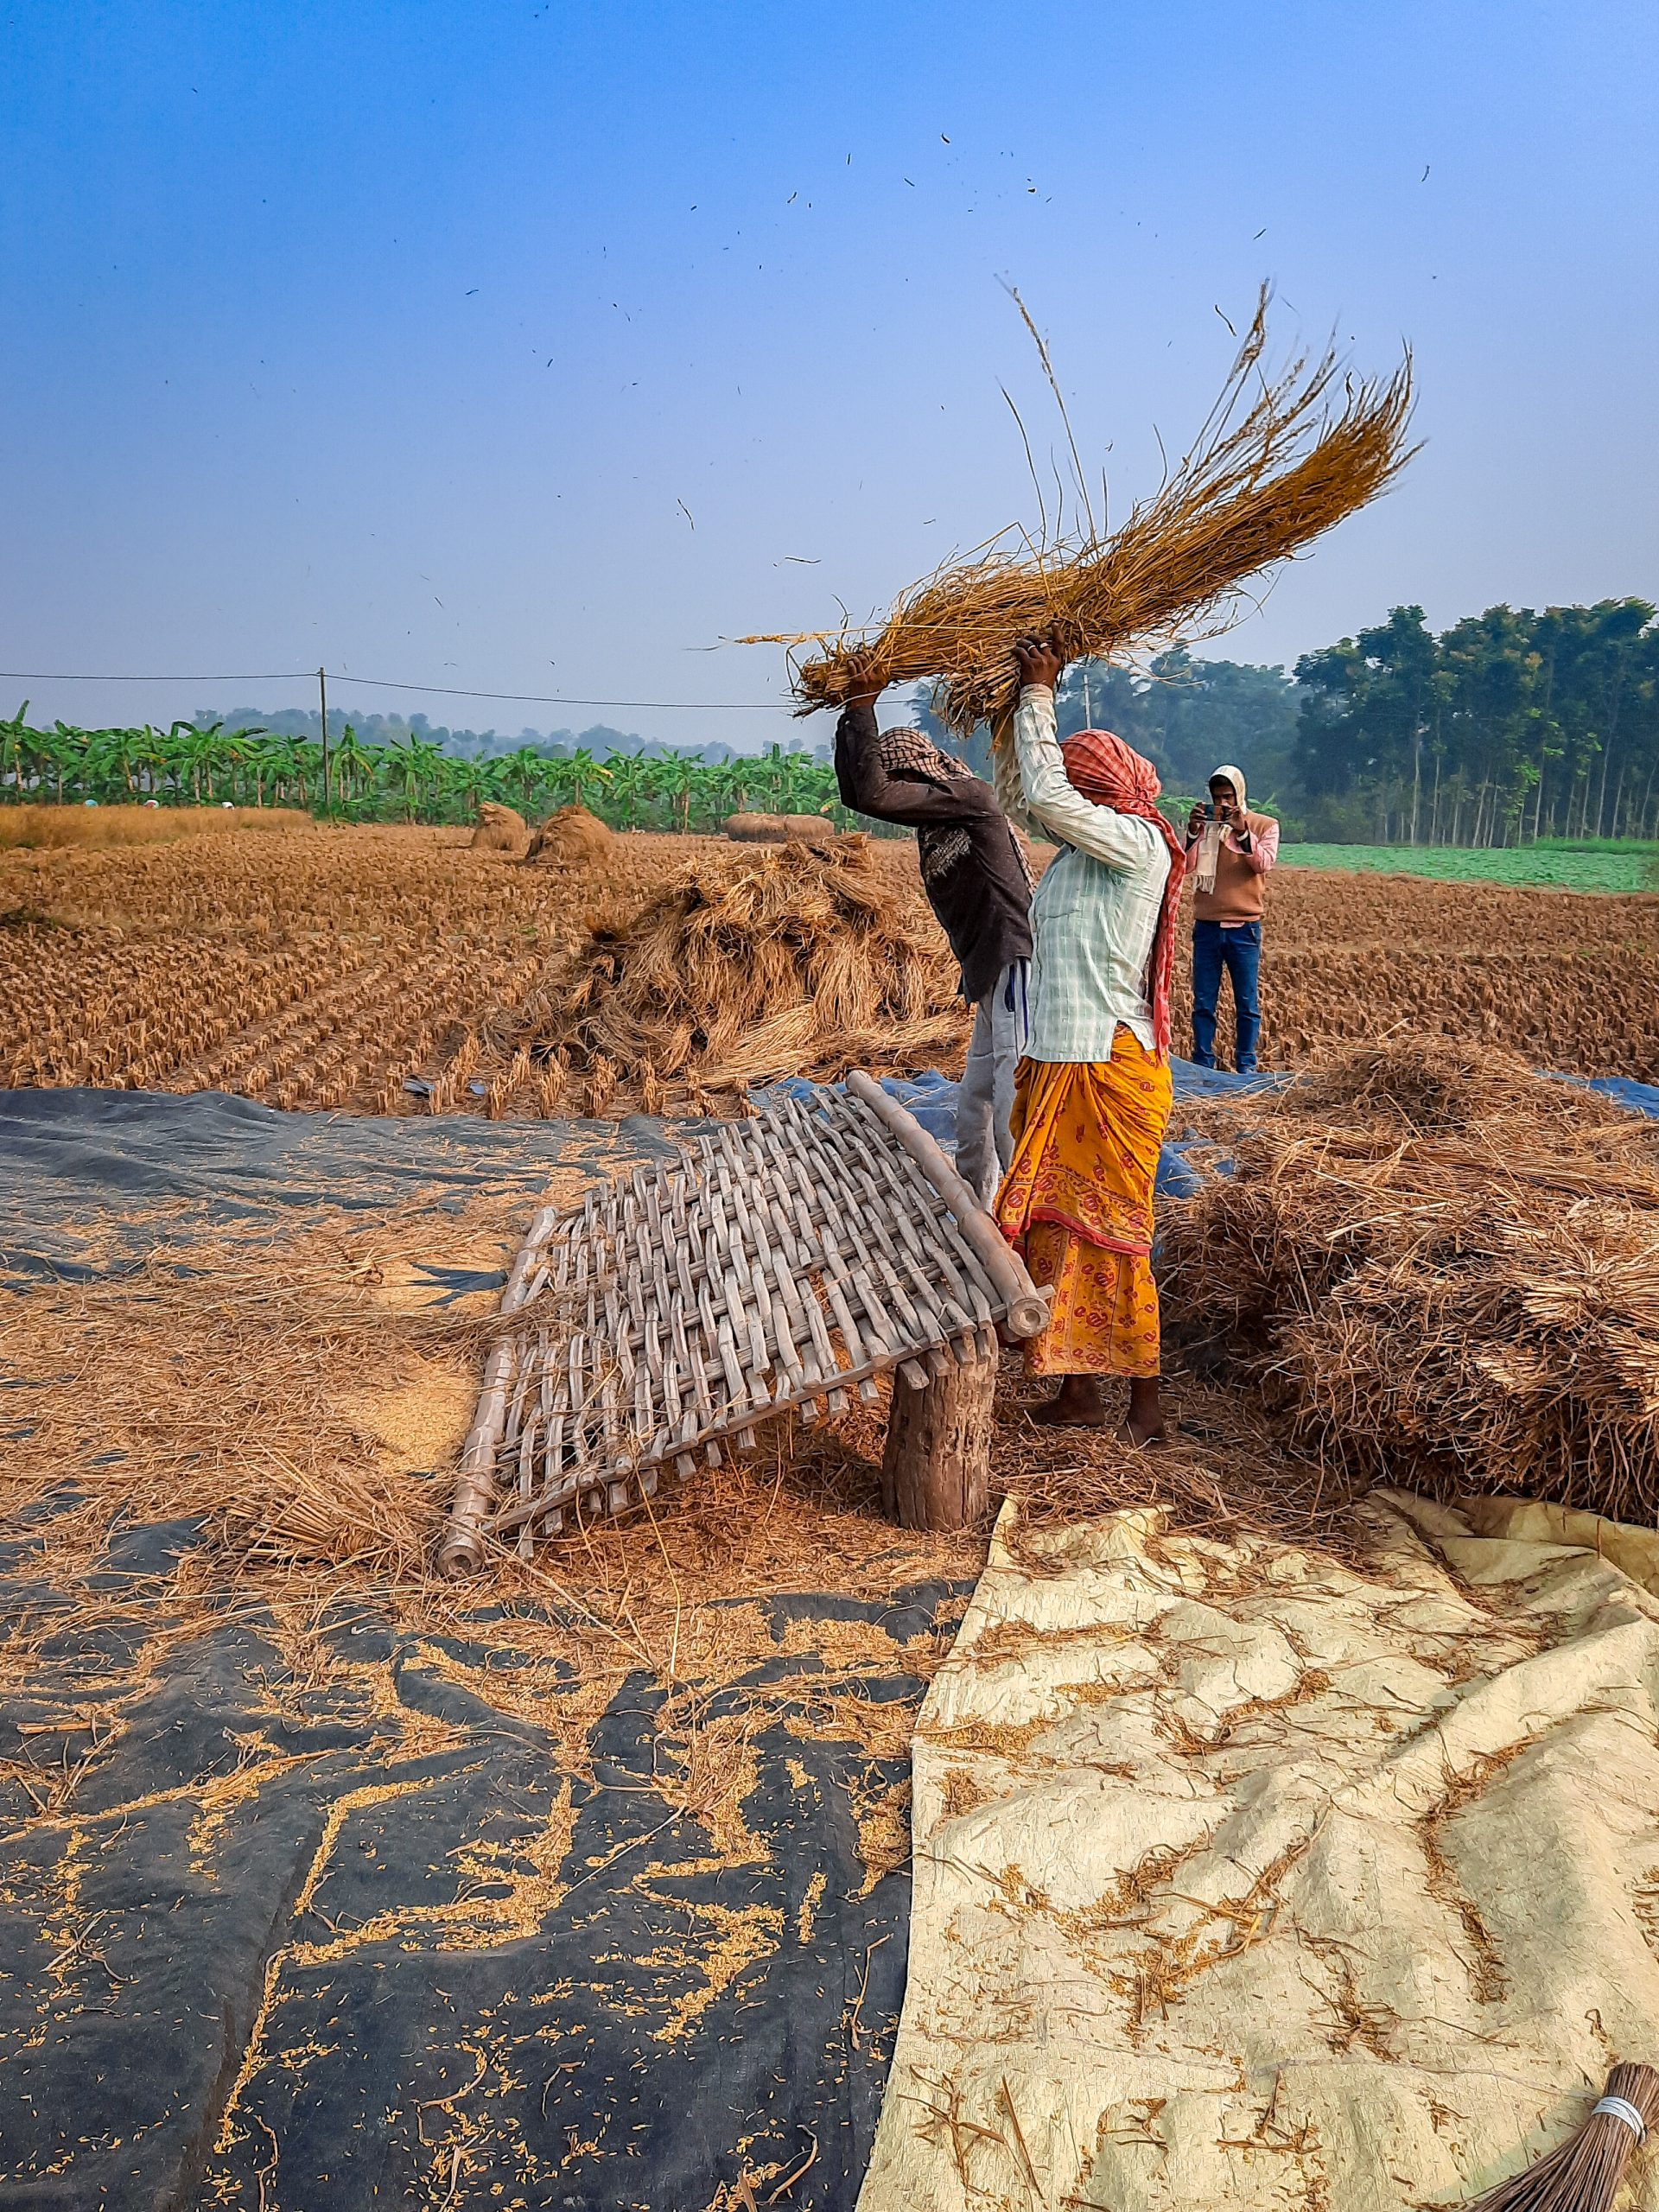 Farmers threshing the crops with hand